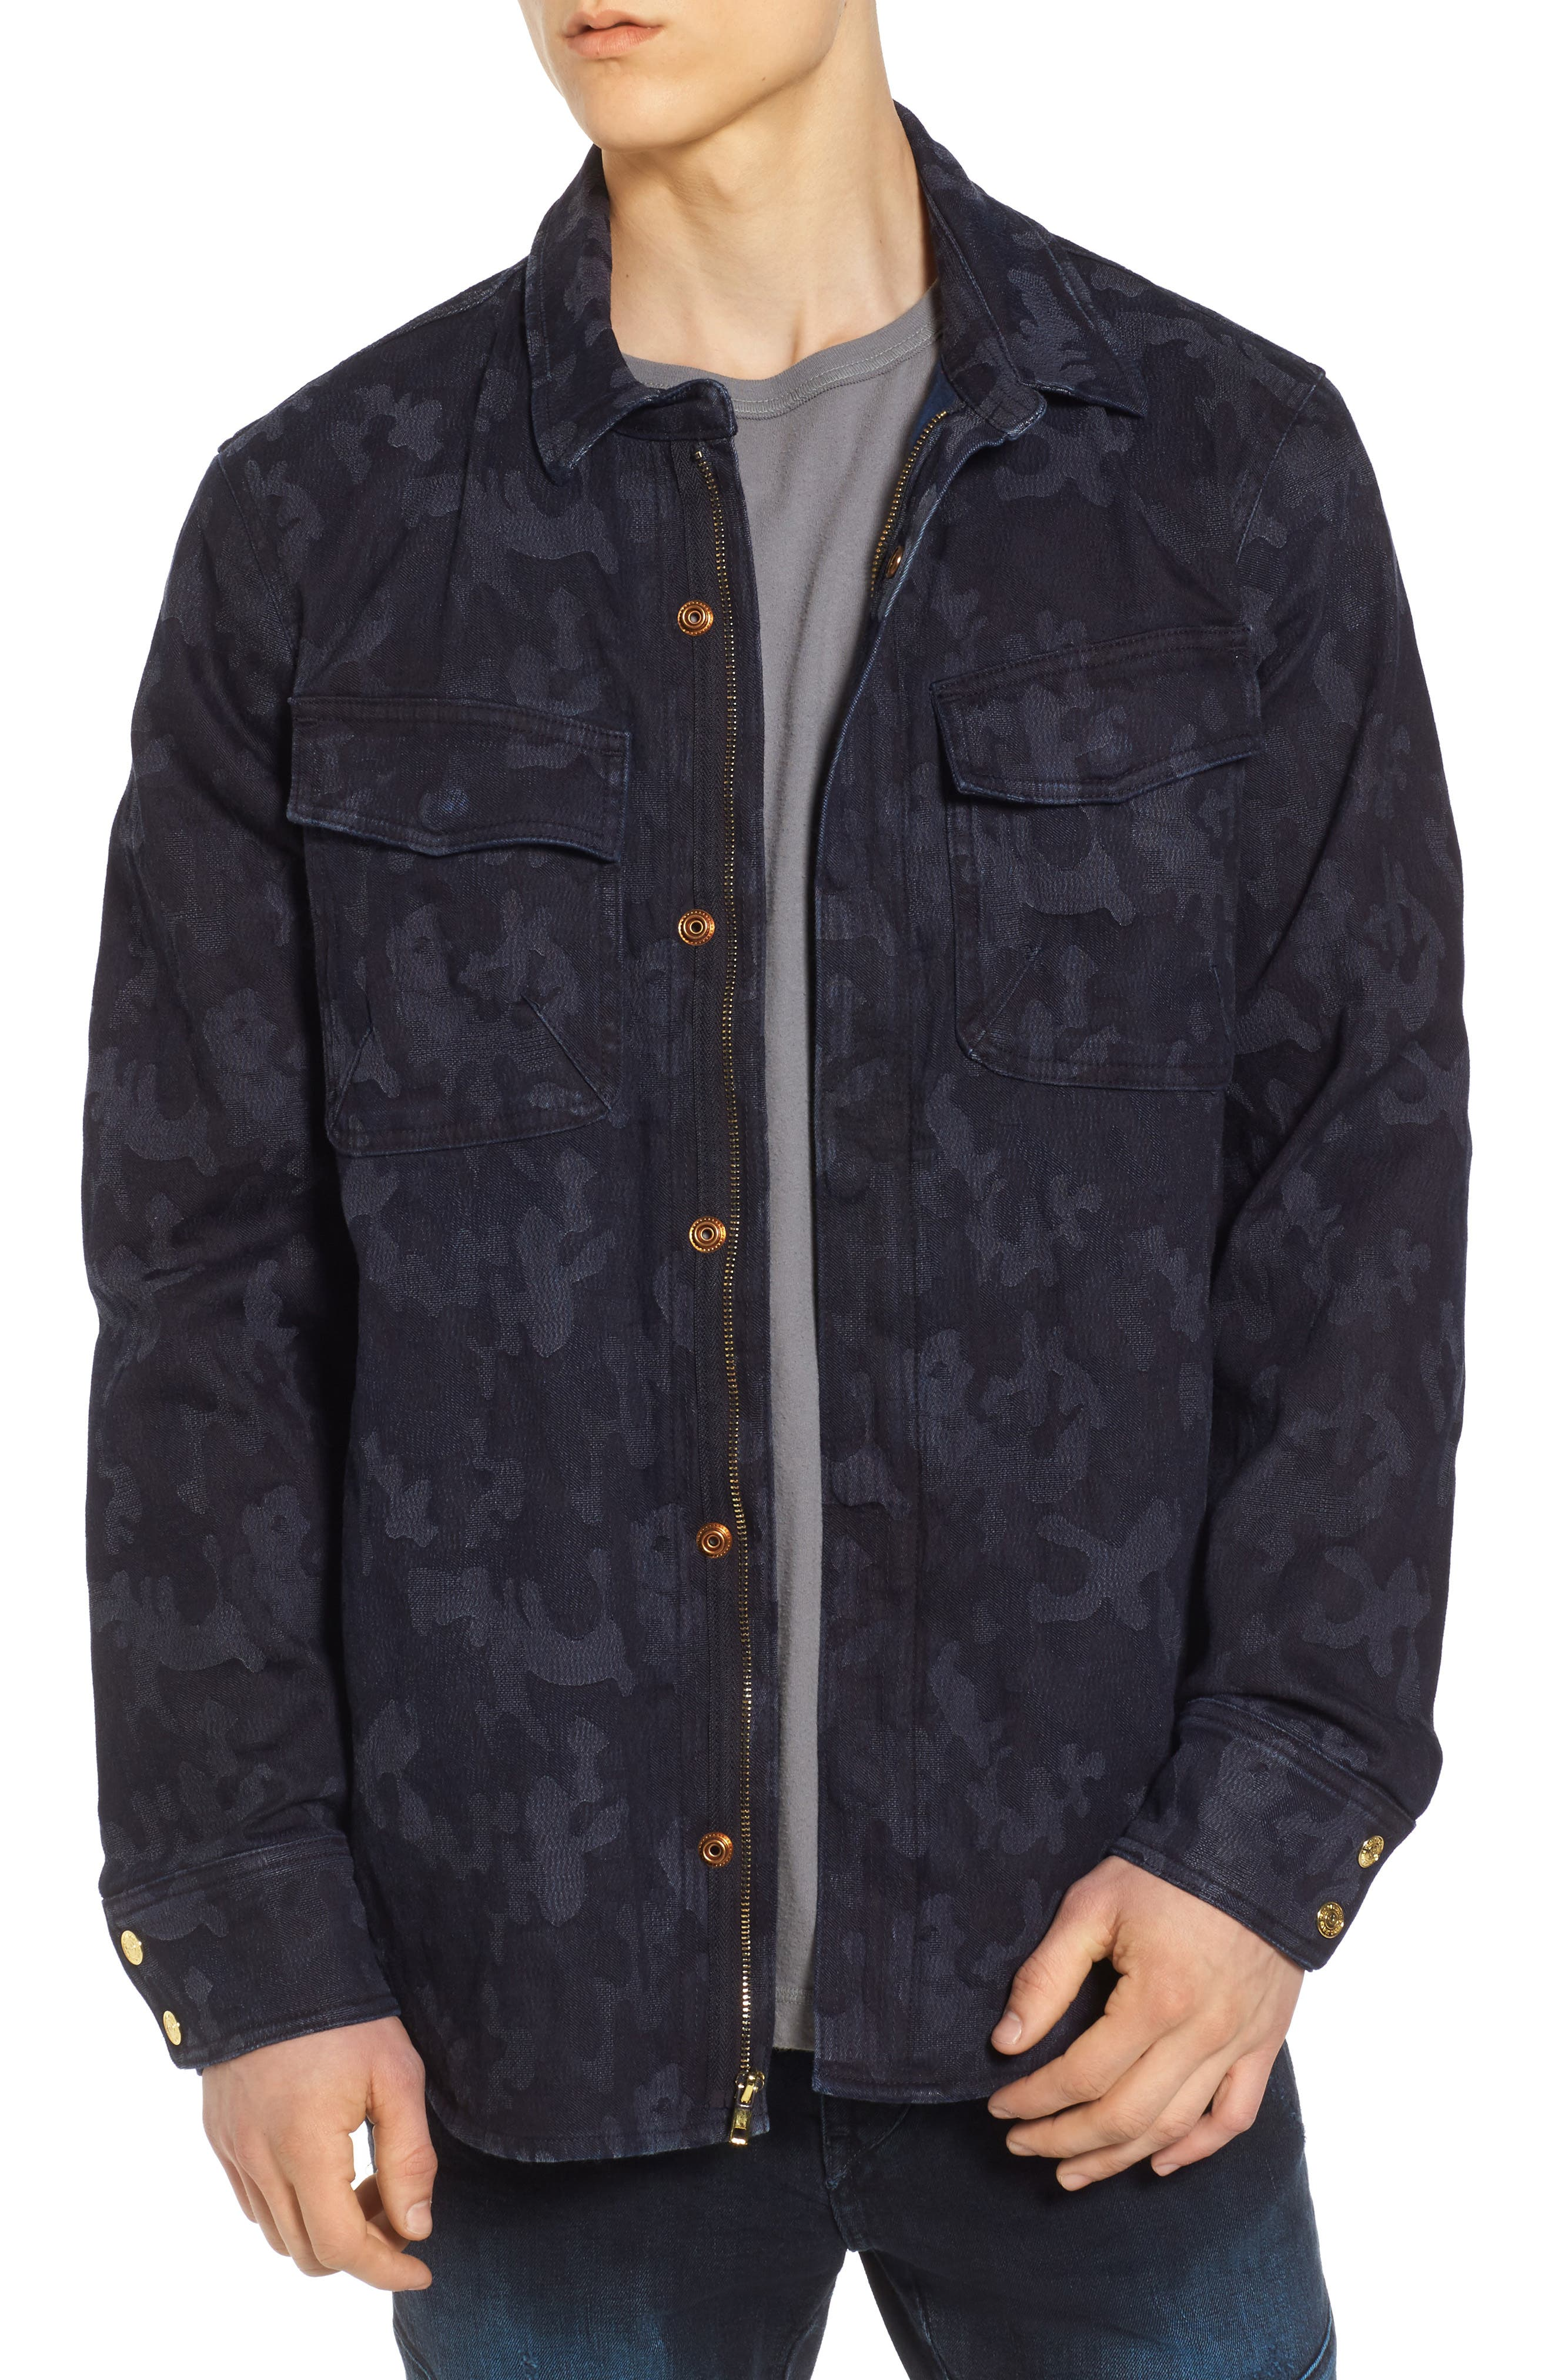 True Religion Brand Jeans Camo Field Jacket